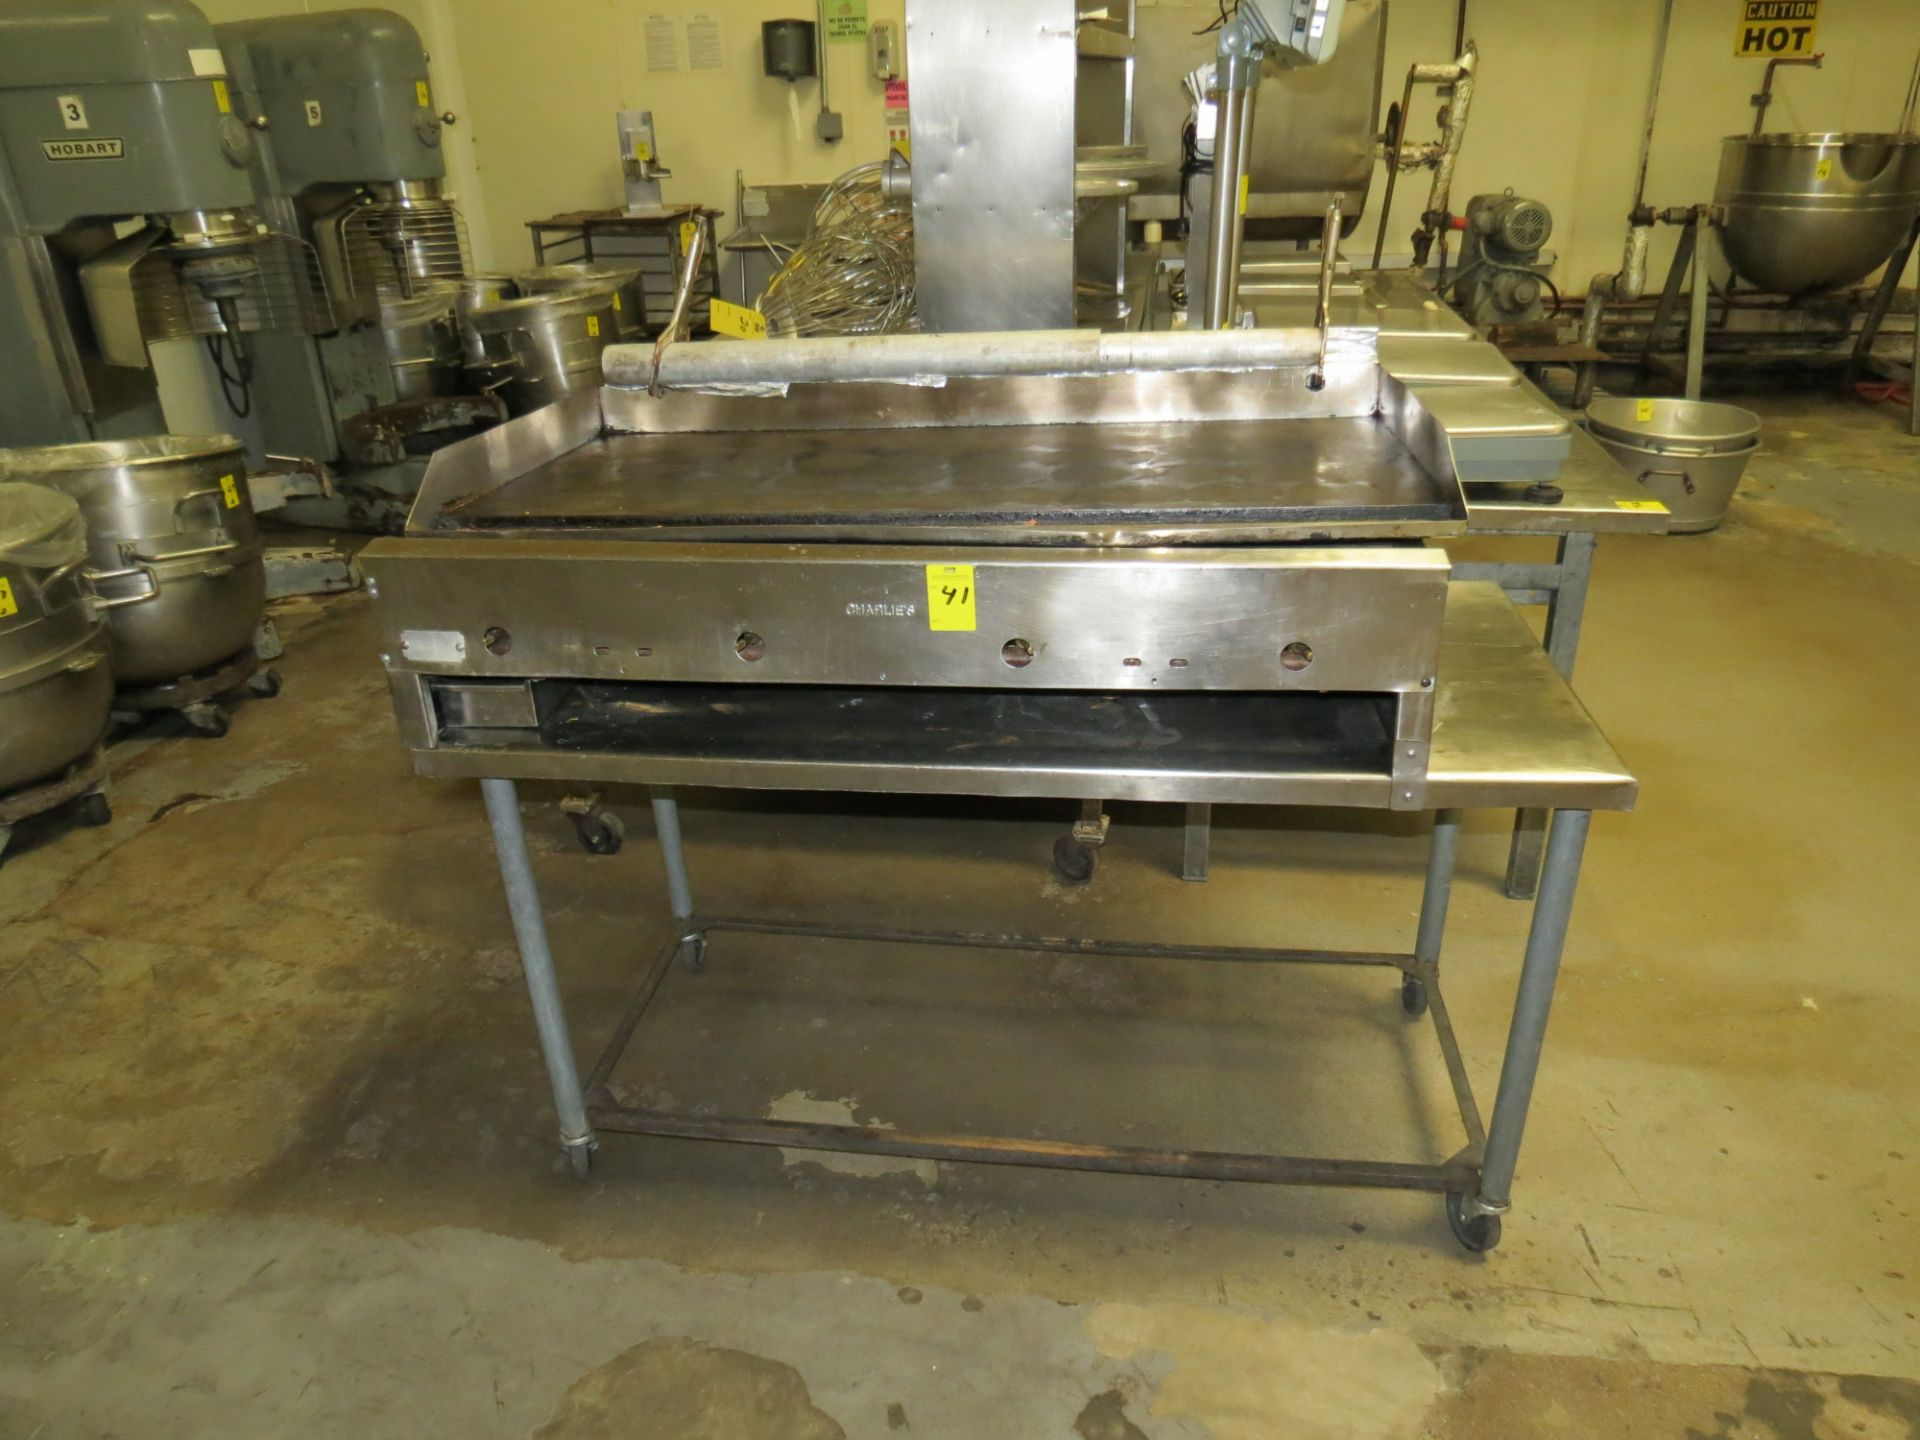 Lot 41 - CHARLIES 4 BURNER STAINLESS STEEL GRILL